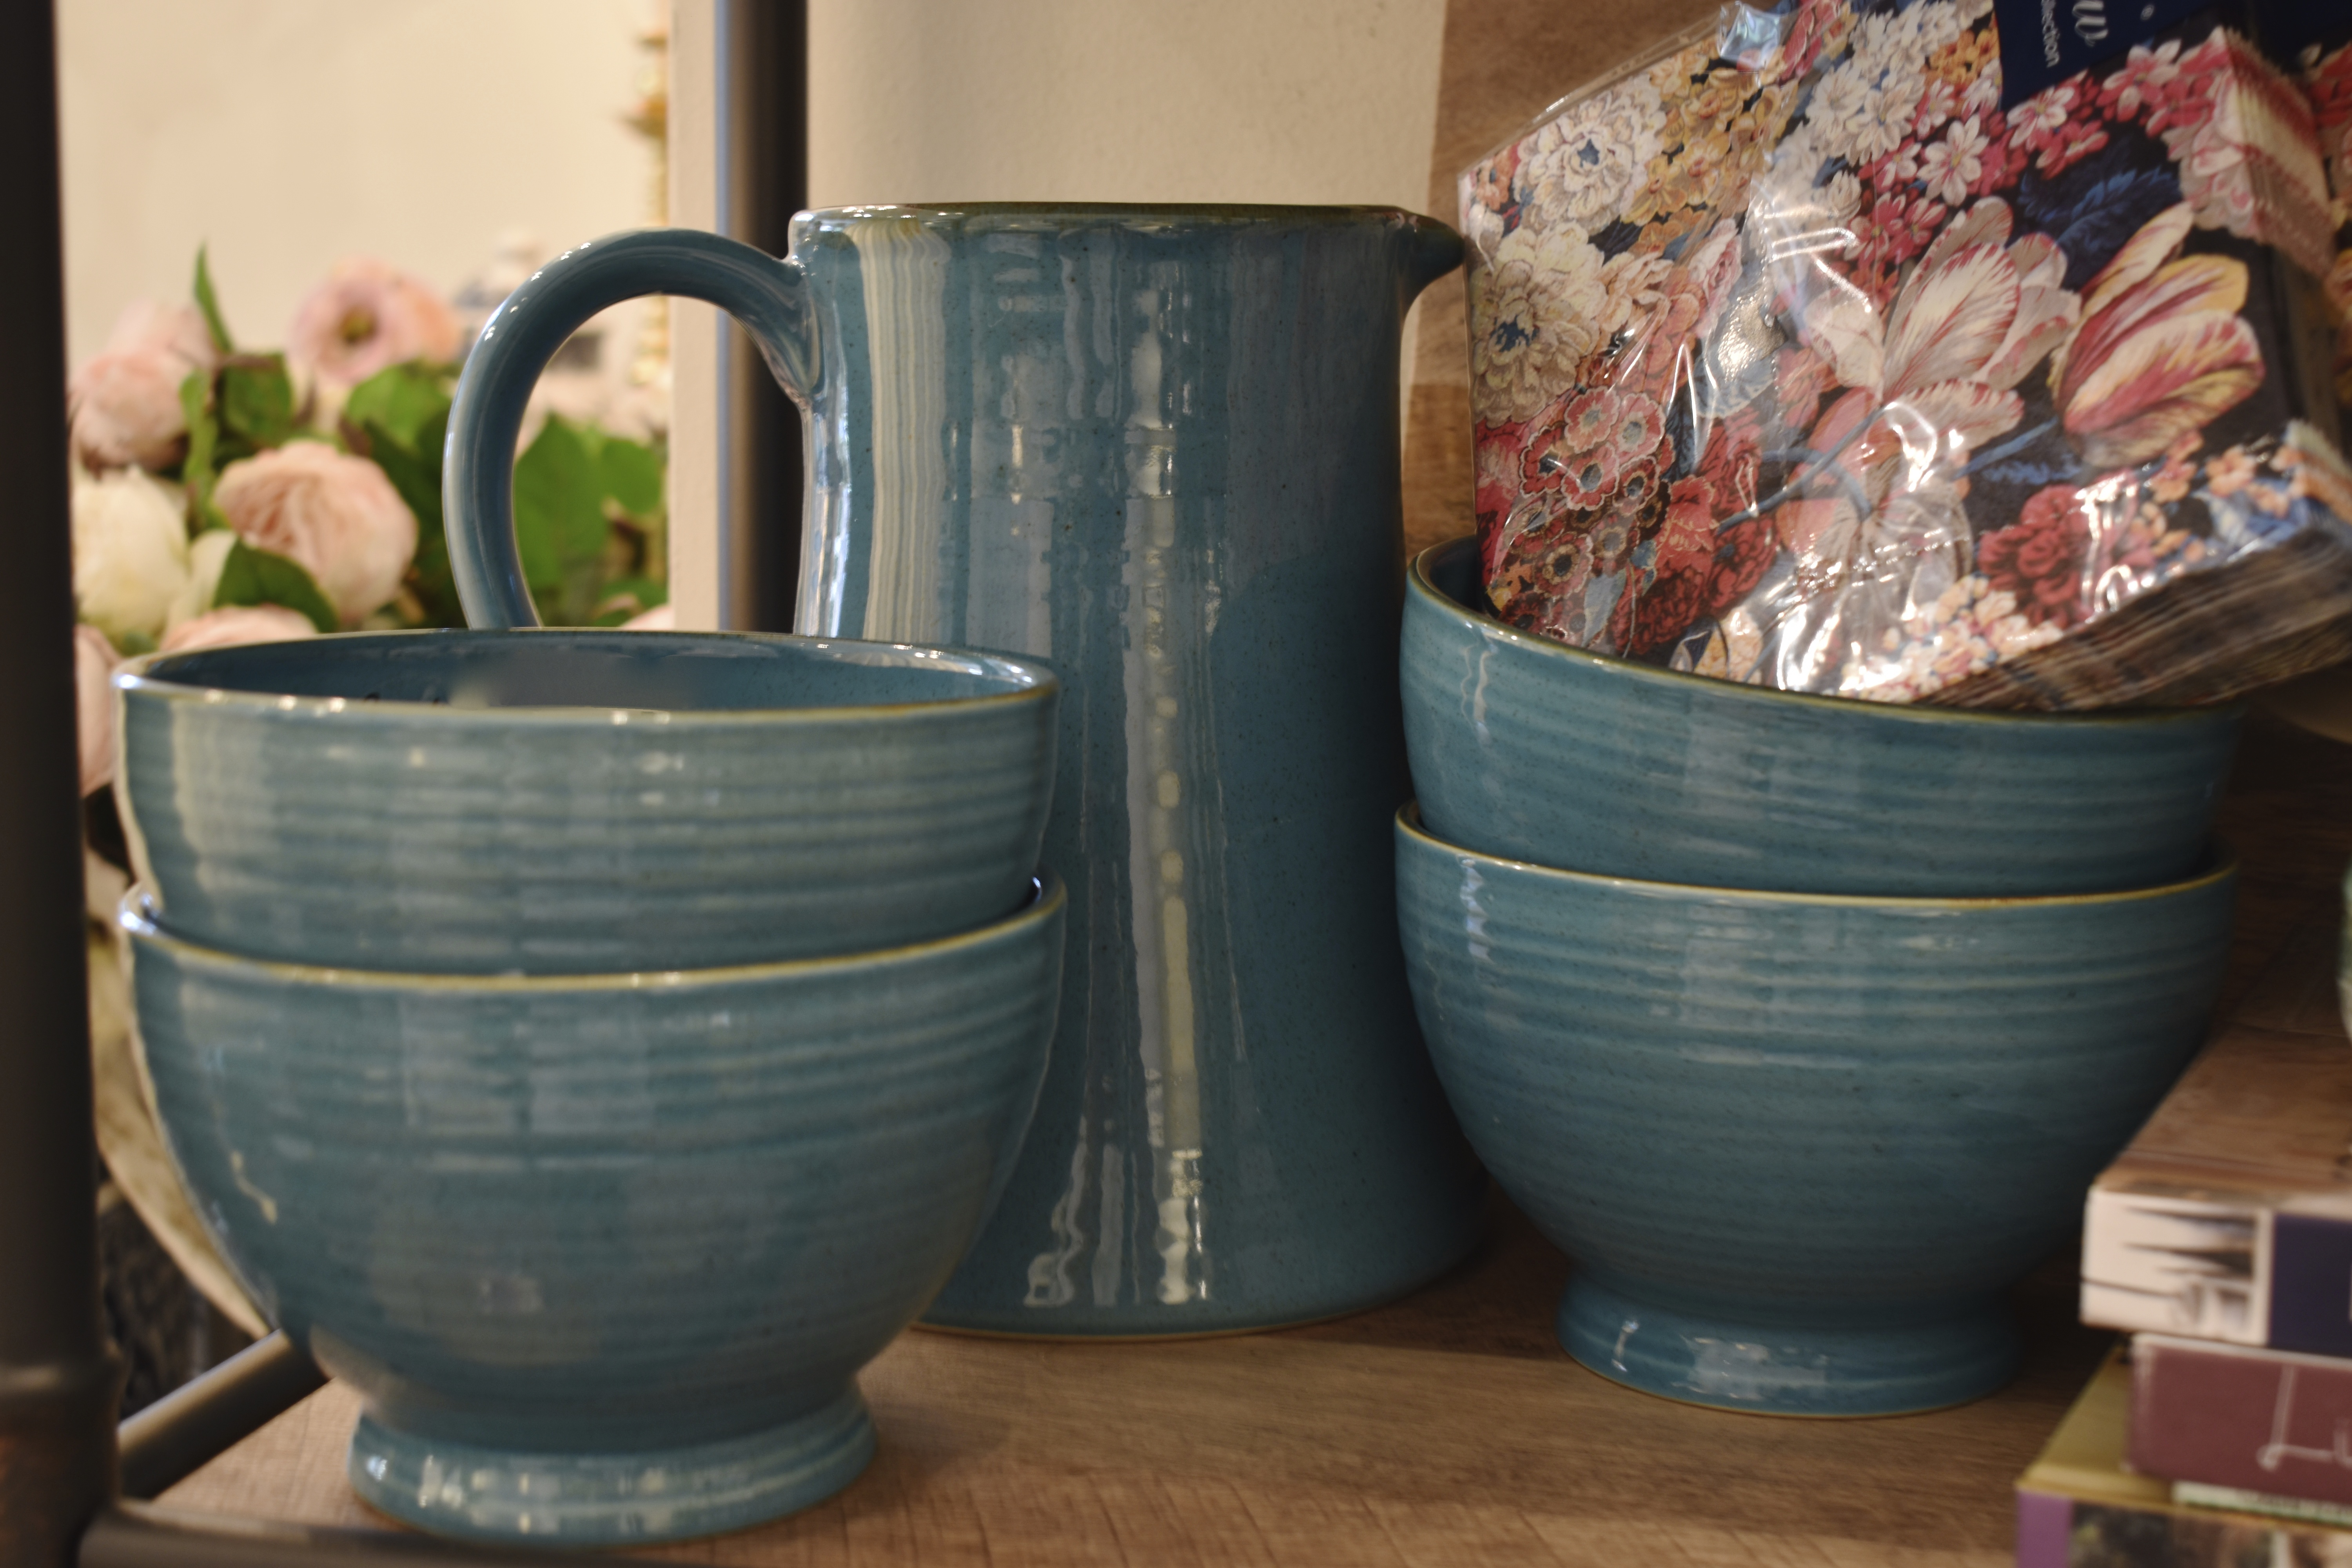 Ceramic Bowls and Pitcher